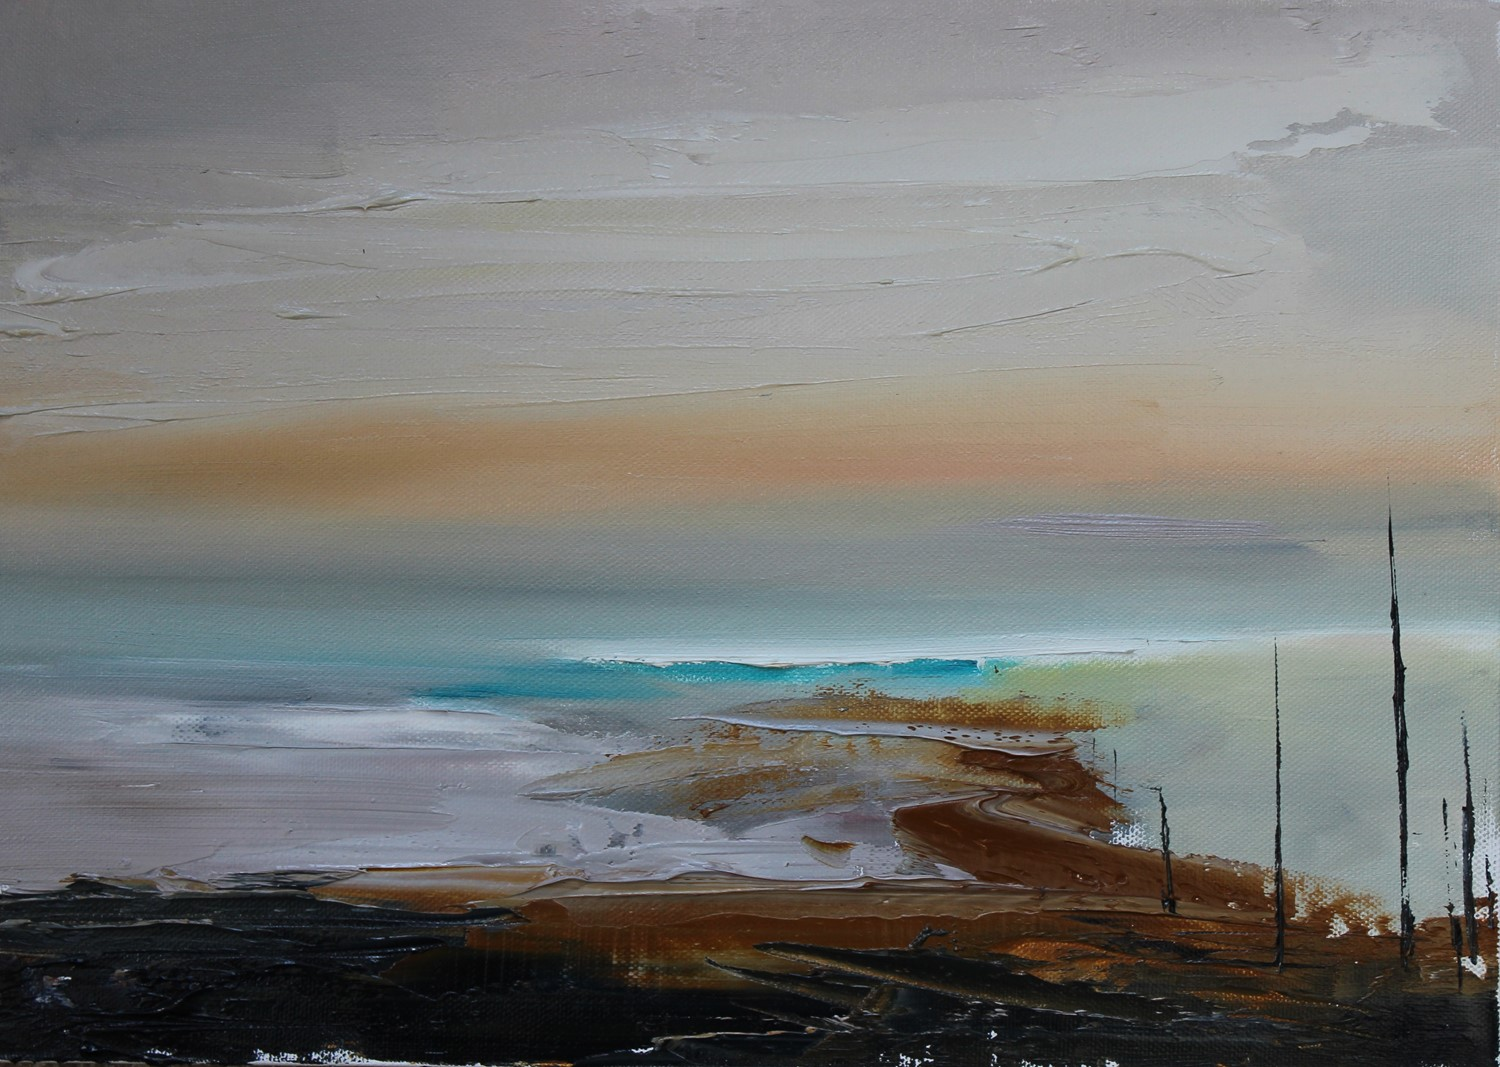 'On the Low Road to the Sea' by artist Rosanne Barr